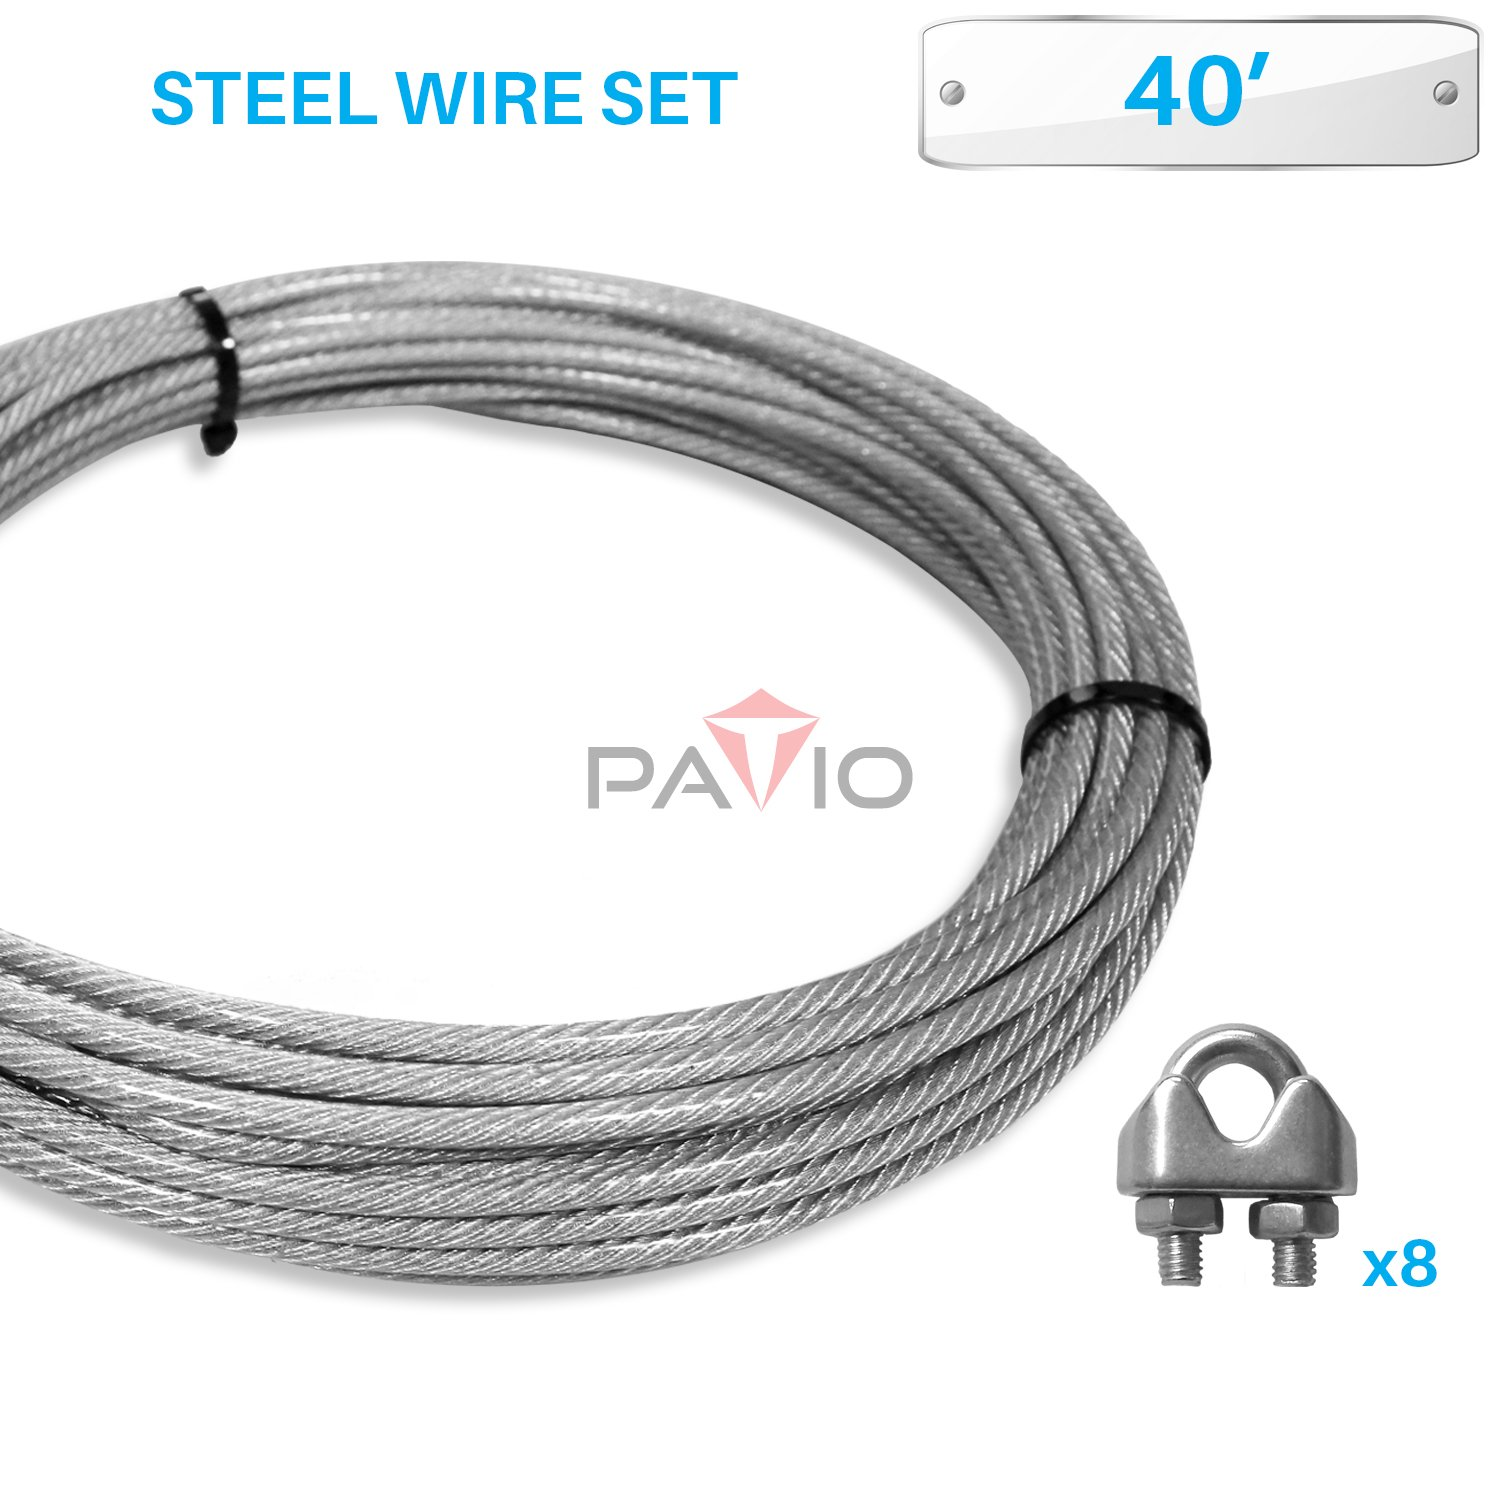 Cheap Cable Clamps Wire Rope, find Cable Clamps Wire Rope deals on ...